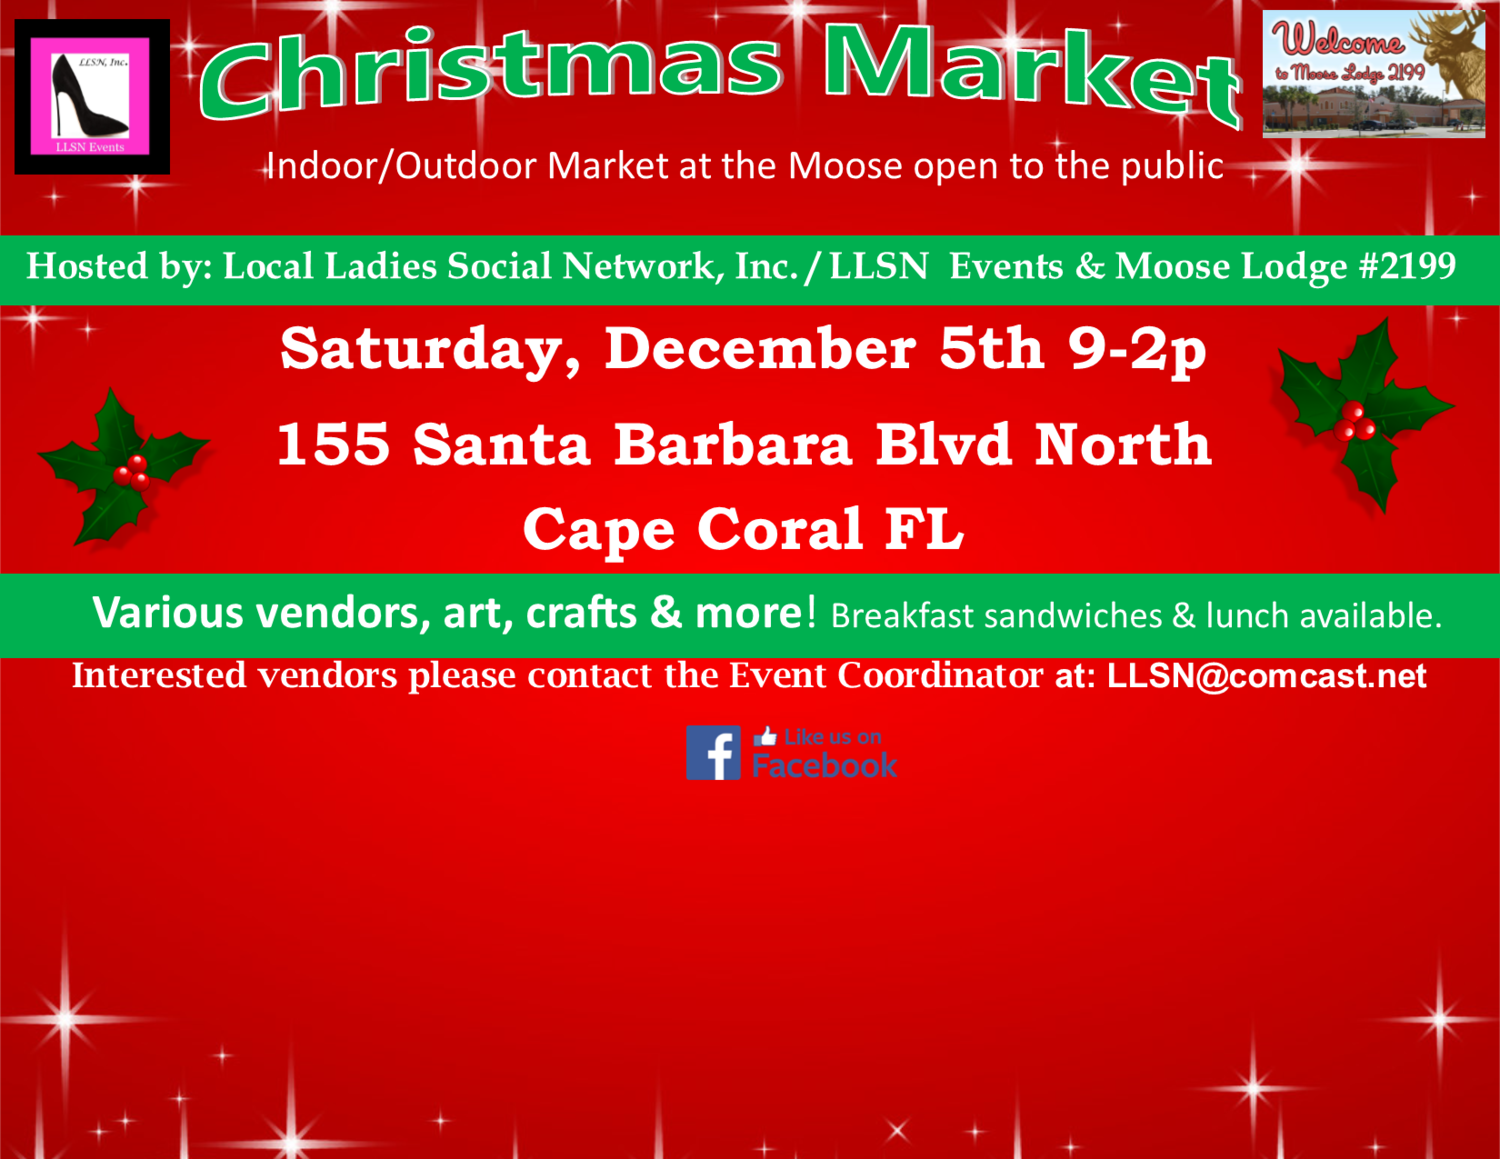 Christmas Market at the Moose- December 5th 2020  OUTSIDE SPOT- (10x10 area)